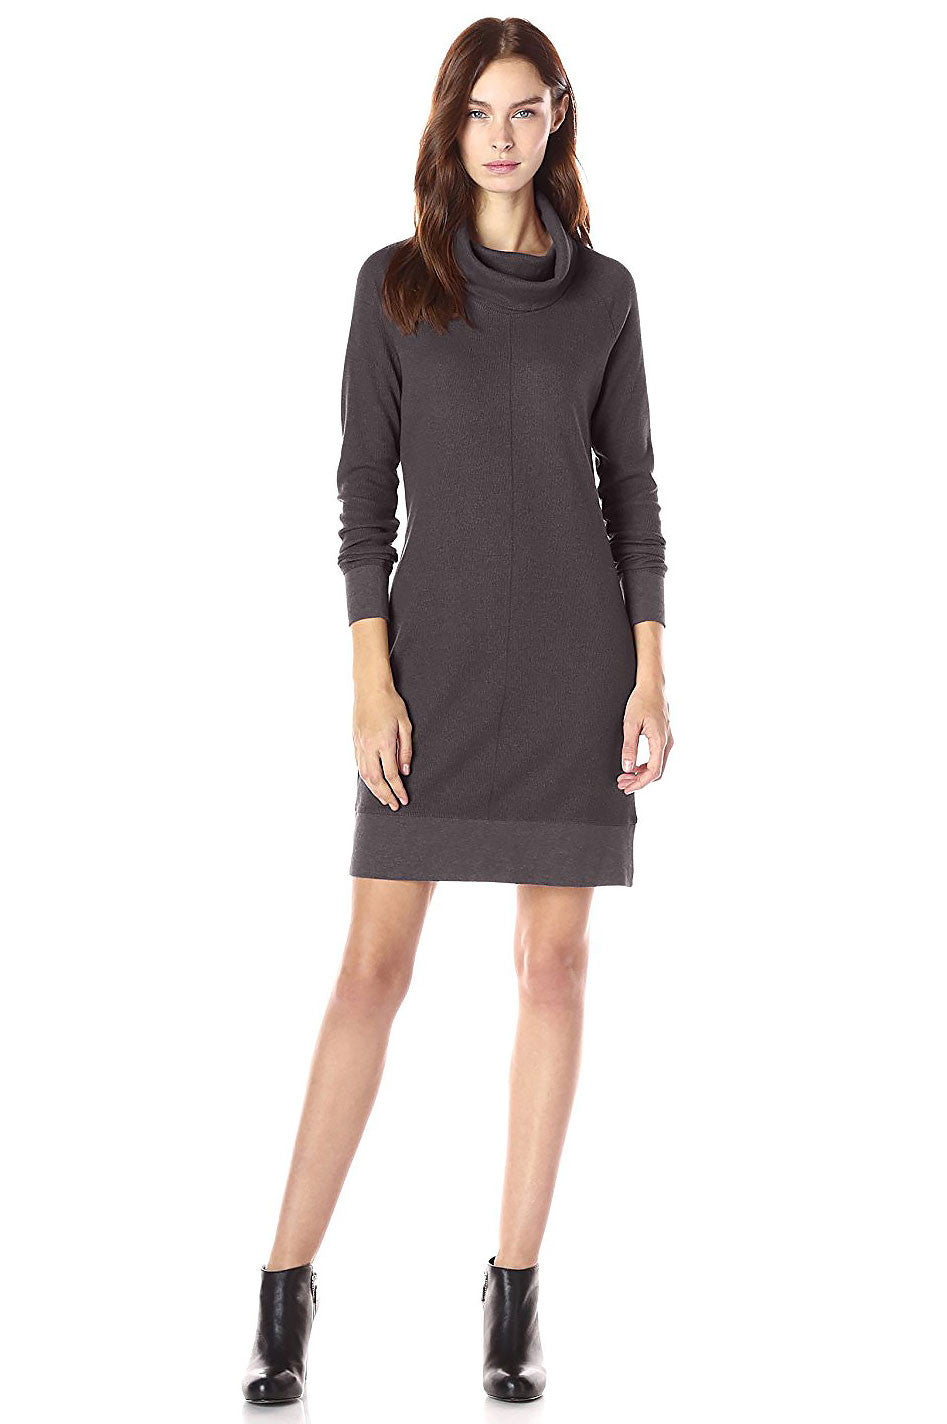 Womens cute fall outfits & sweater dresses: long sleeve mini sweater dress. Winter wear and fall dresses in grey